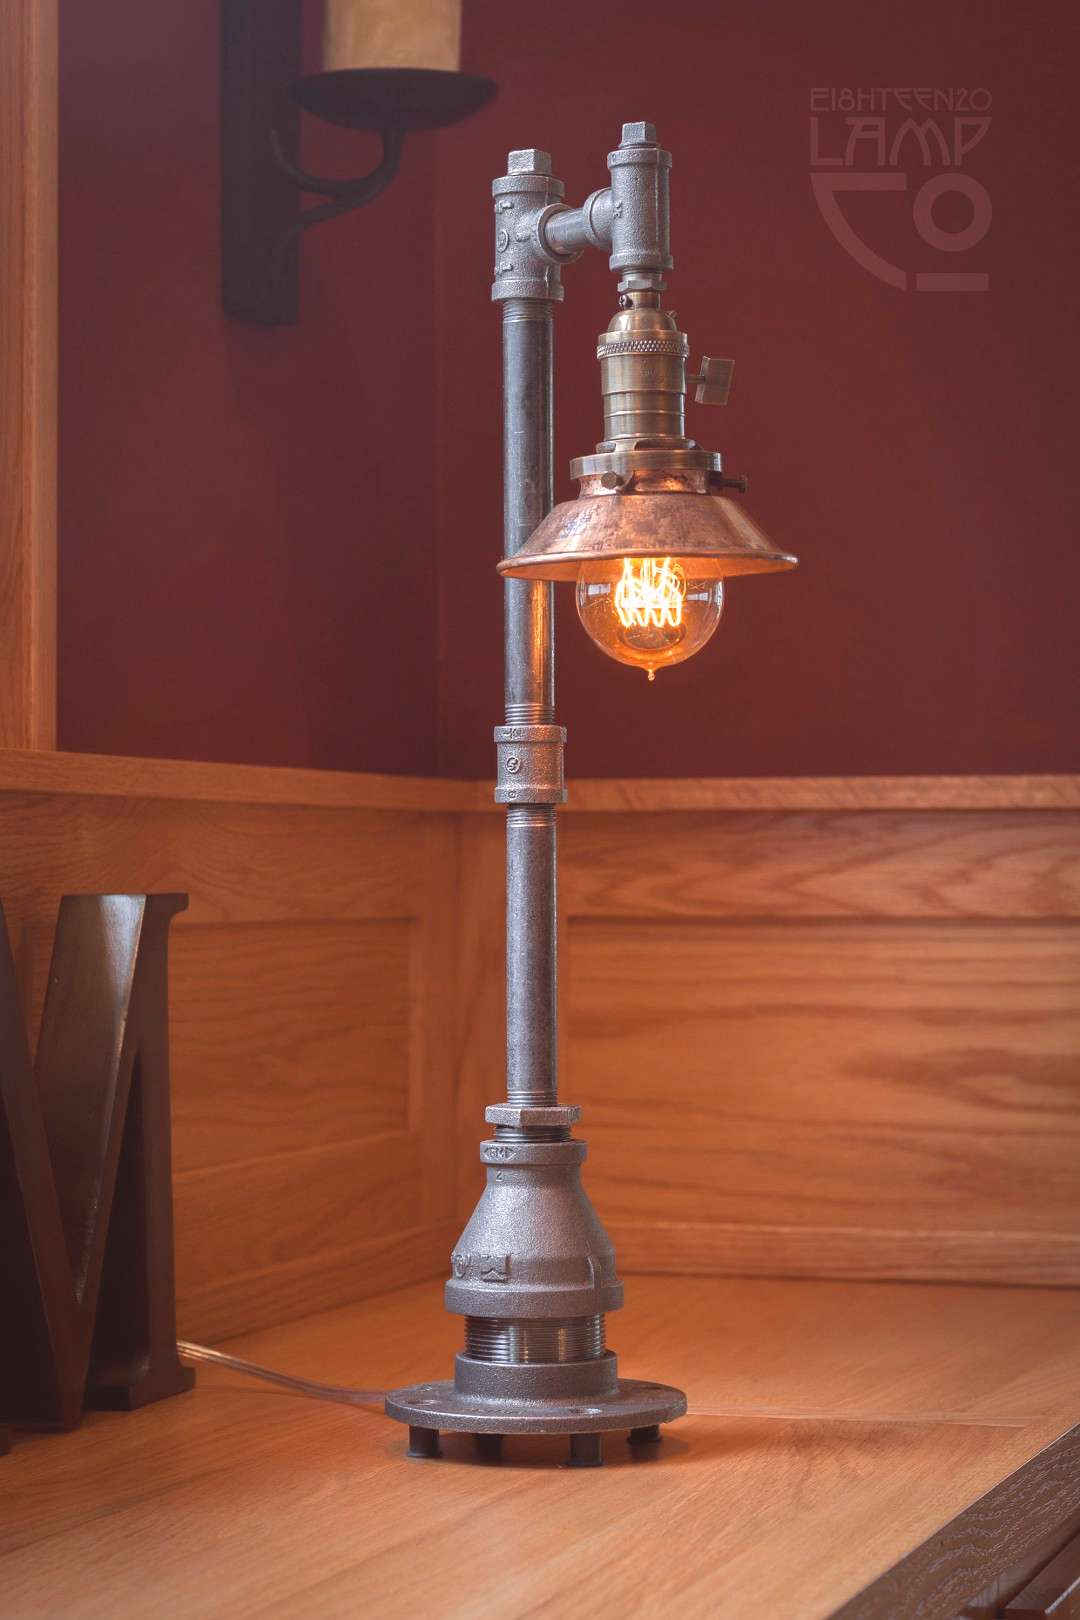 No. 2 Industrial Light Fixture Edison Style Pipe Lamp   Etsy